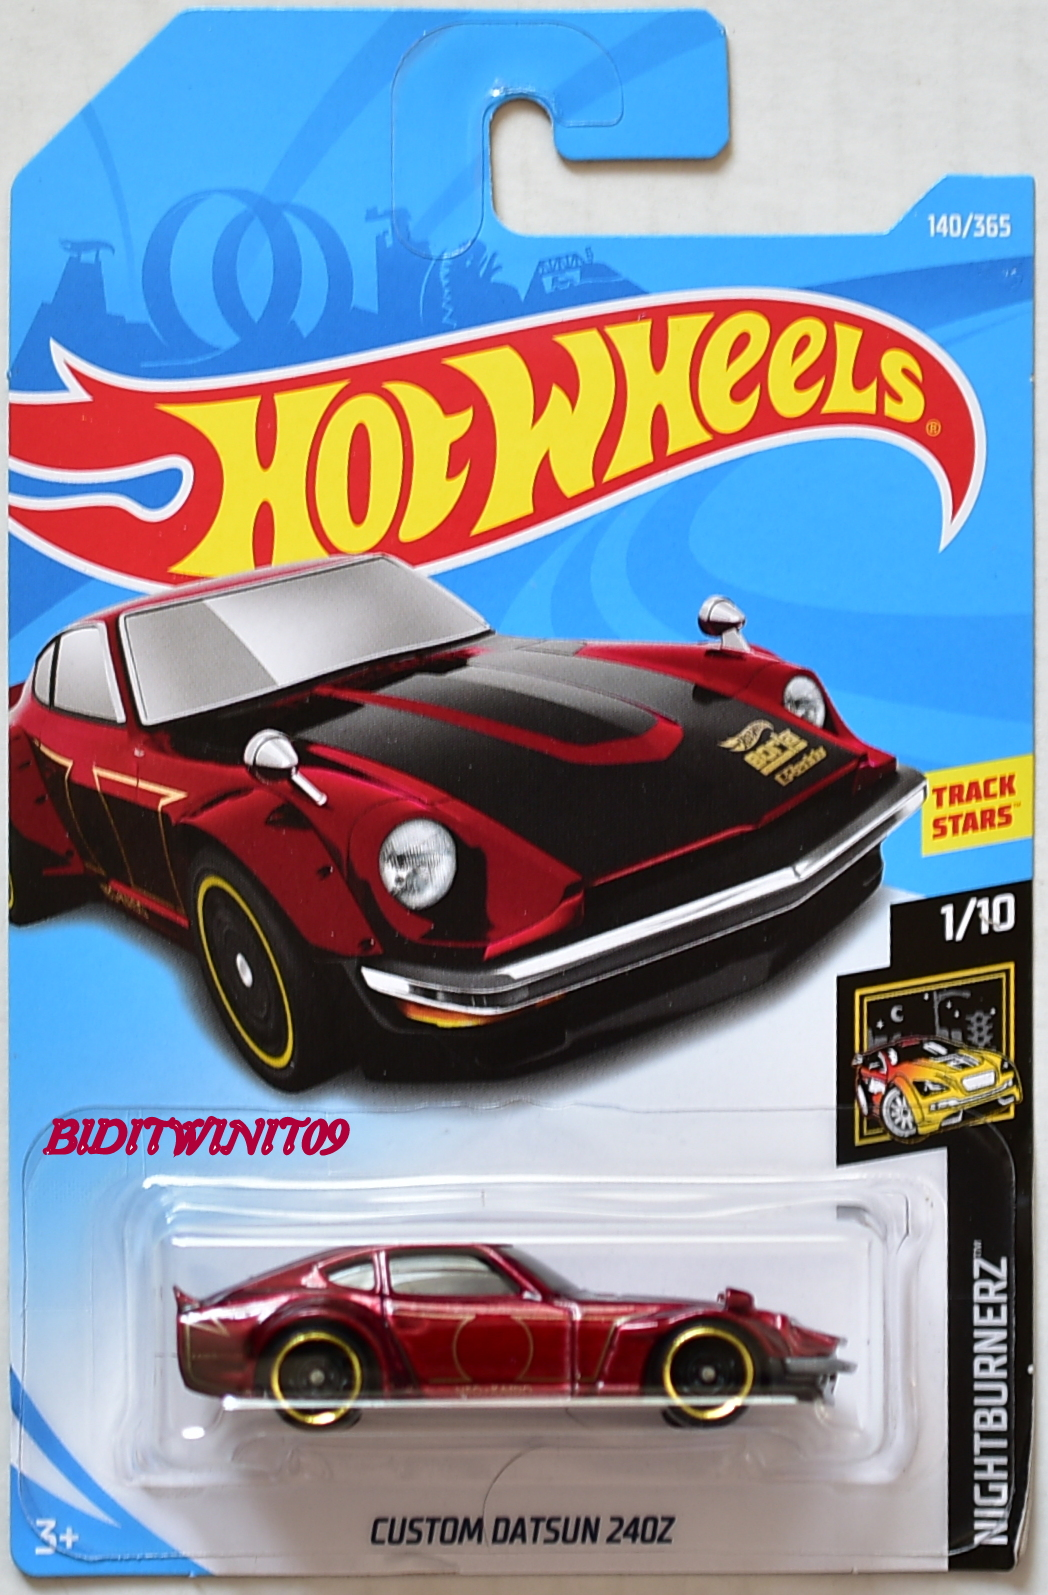 HOT WHEELS 2018 NIGHTBURNERZ CUSTOM DATSUN 240Z #1/10 RED